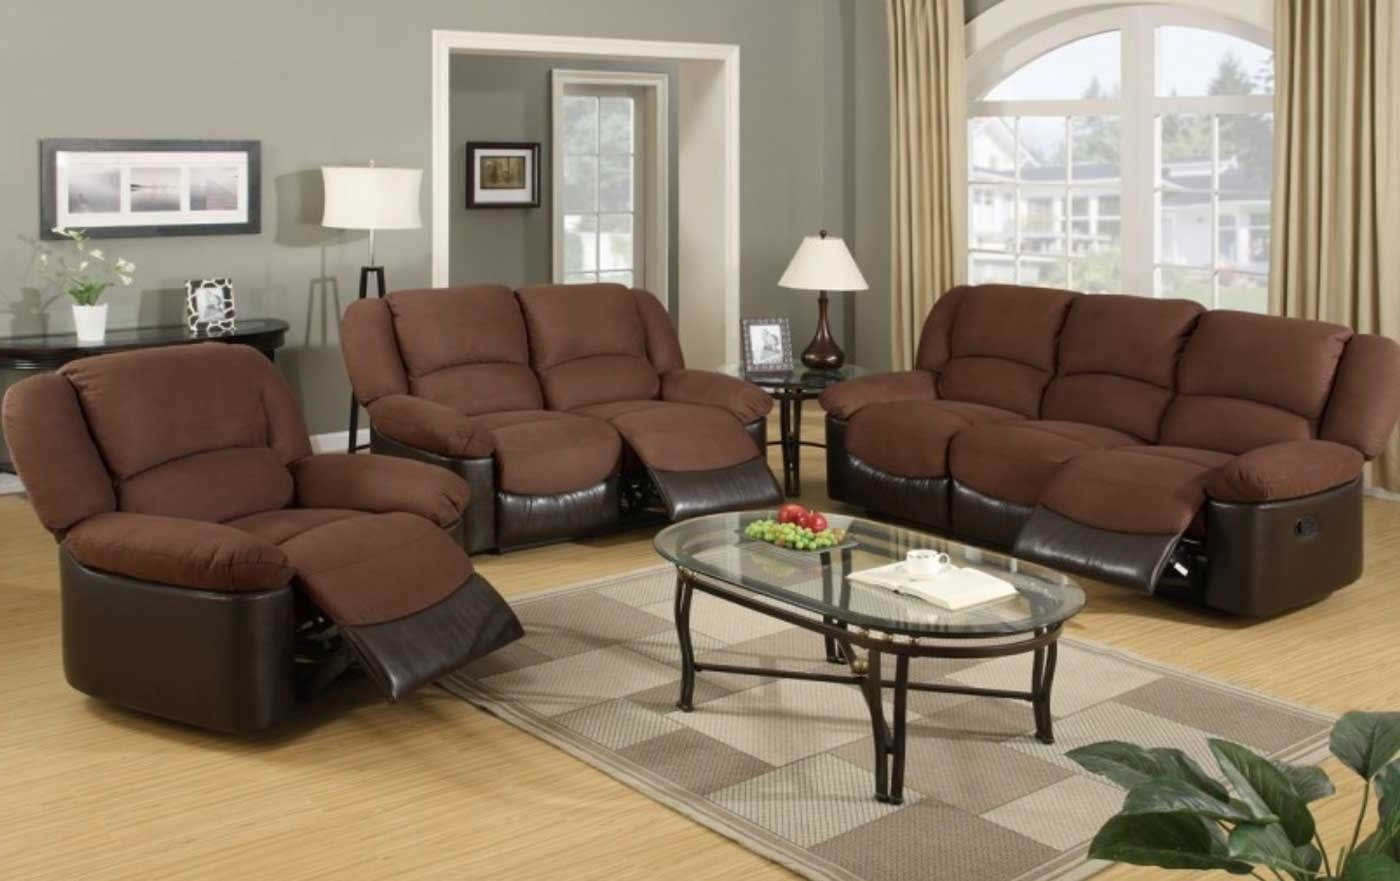 Brown Sofa Chairs For 2018 Brown Chairs For Living Room (View 11 of 15)